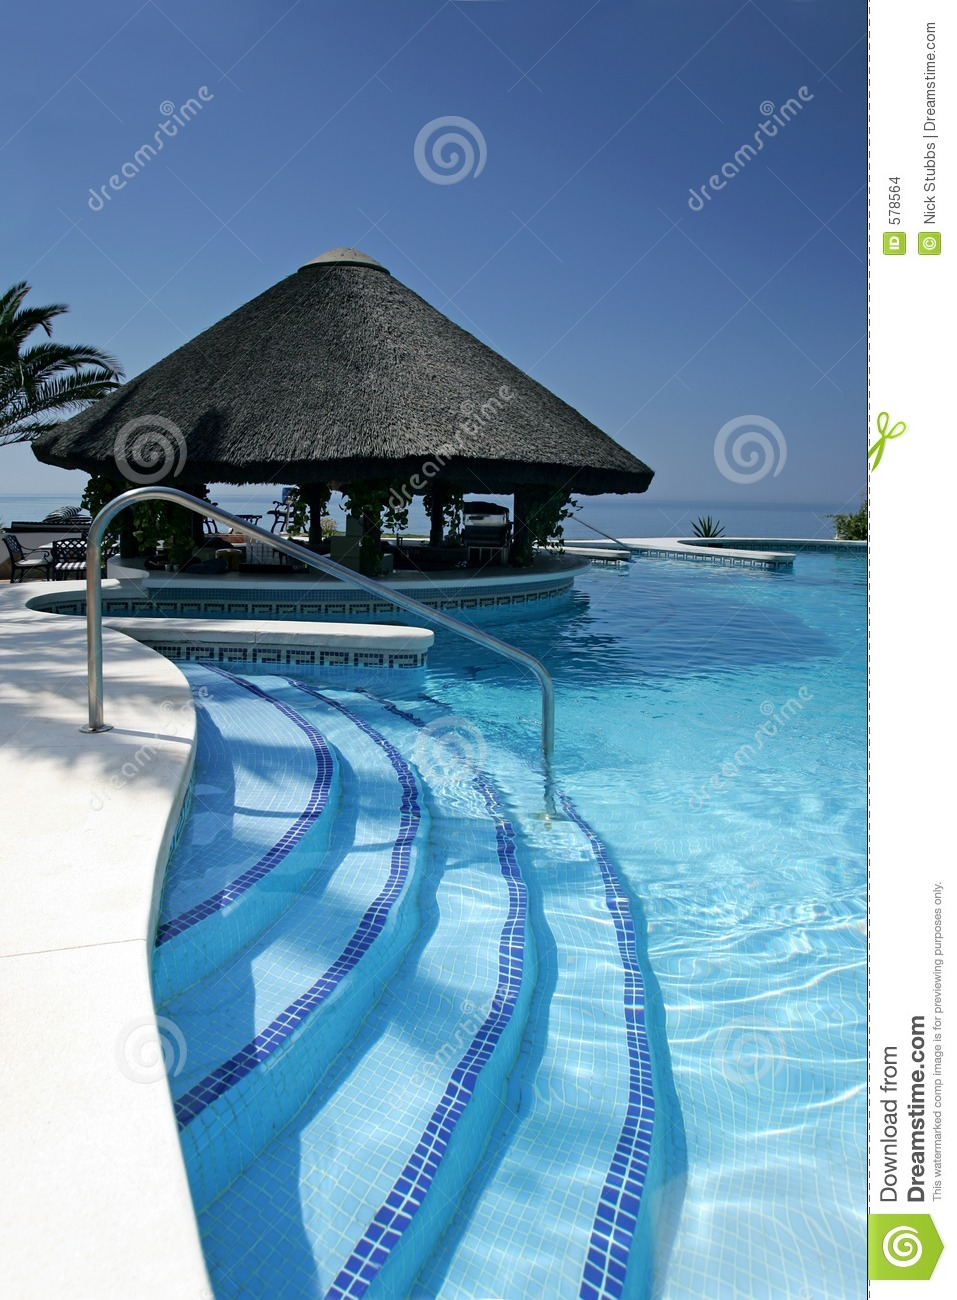 Beach chair beach chair clipart - Tiki Hut And Bar By Swimming Pool Of Luxury Hotel Stock